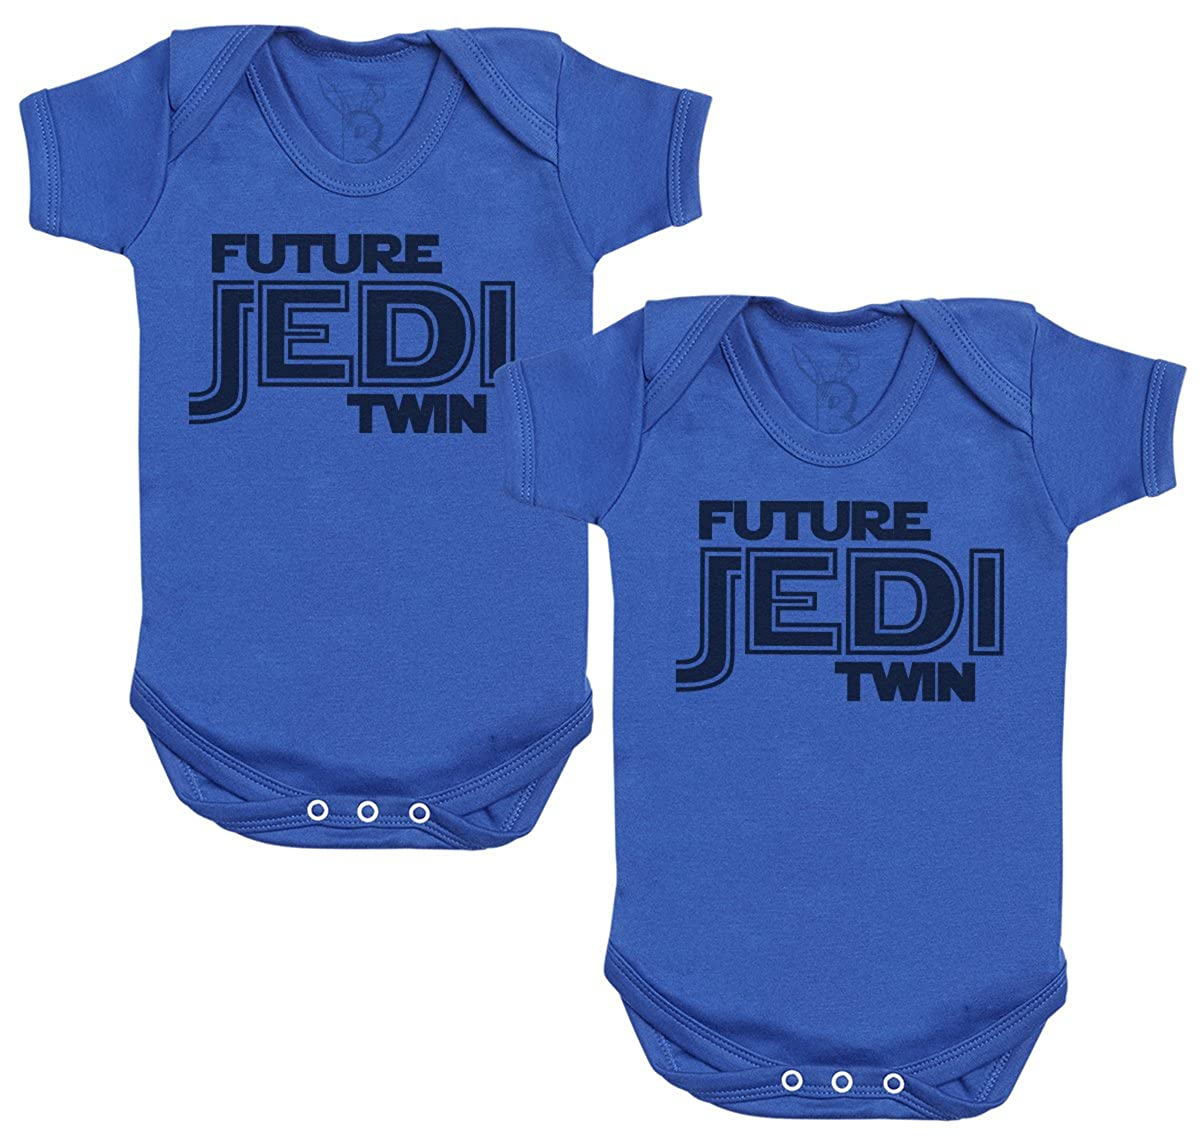 Zarlivia Clothing Future Jedi Twins Baby Bodysuit - Baby Onsie - Baby Gift Twin Set - Baby Twins Gift - Baby Gift Twins